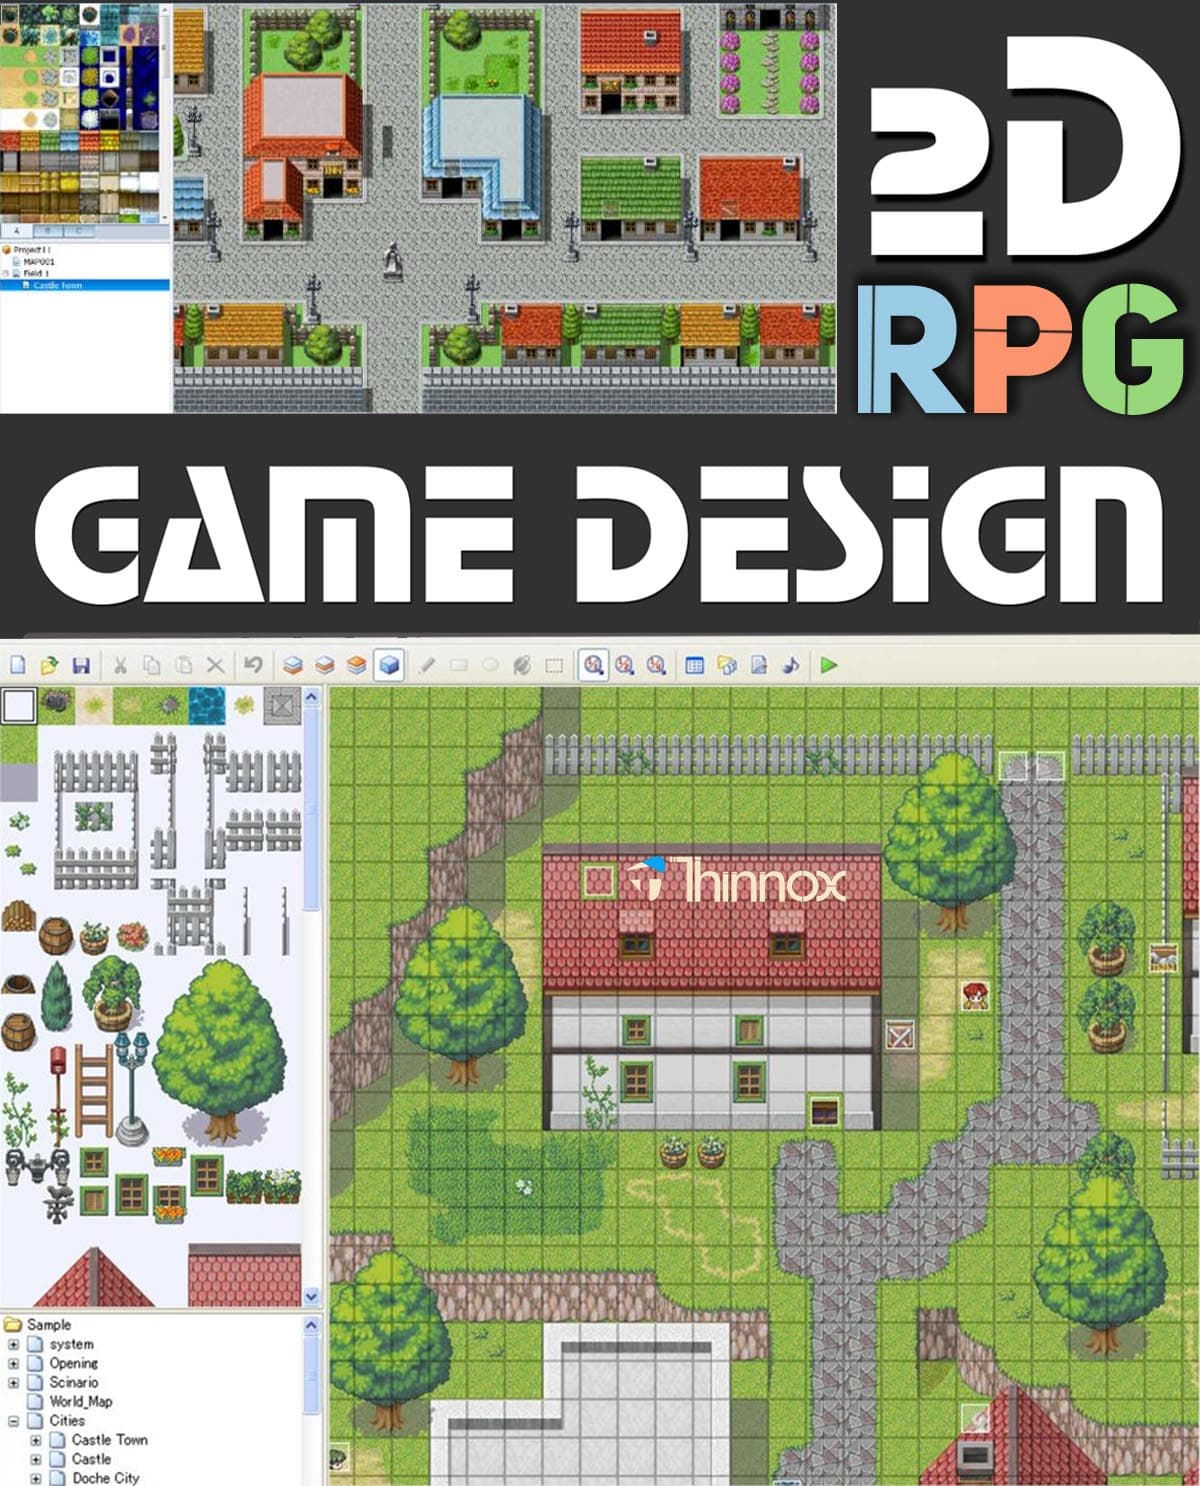 2D RPG Game Design